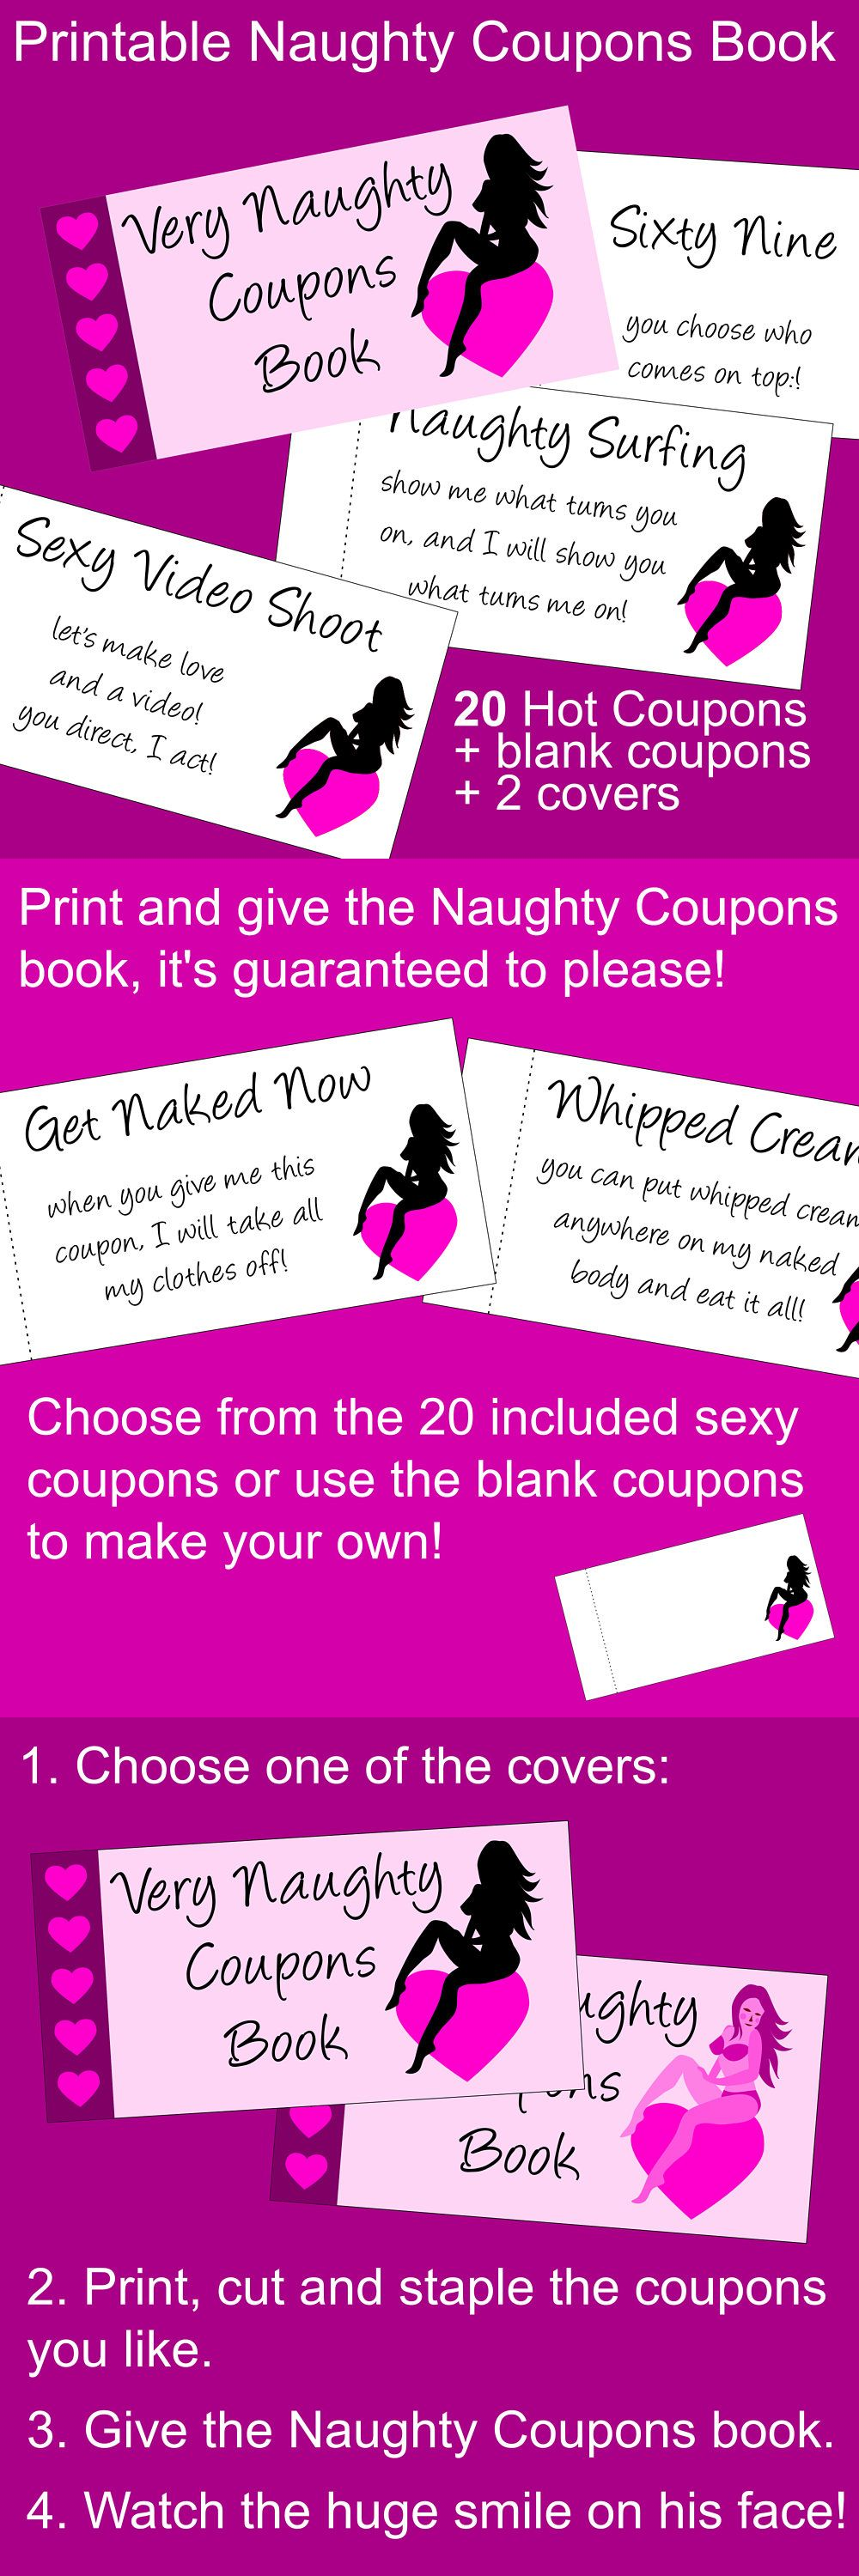 Naughty Coupon Book   Printable Coupons For Boyfriend